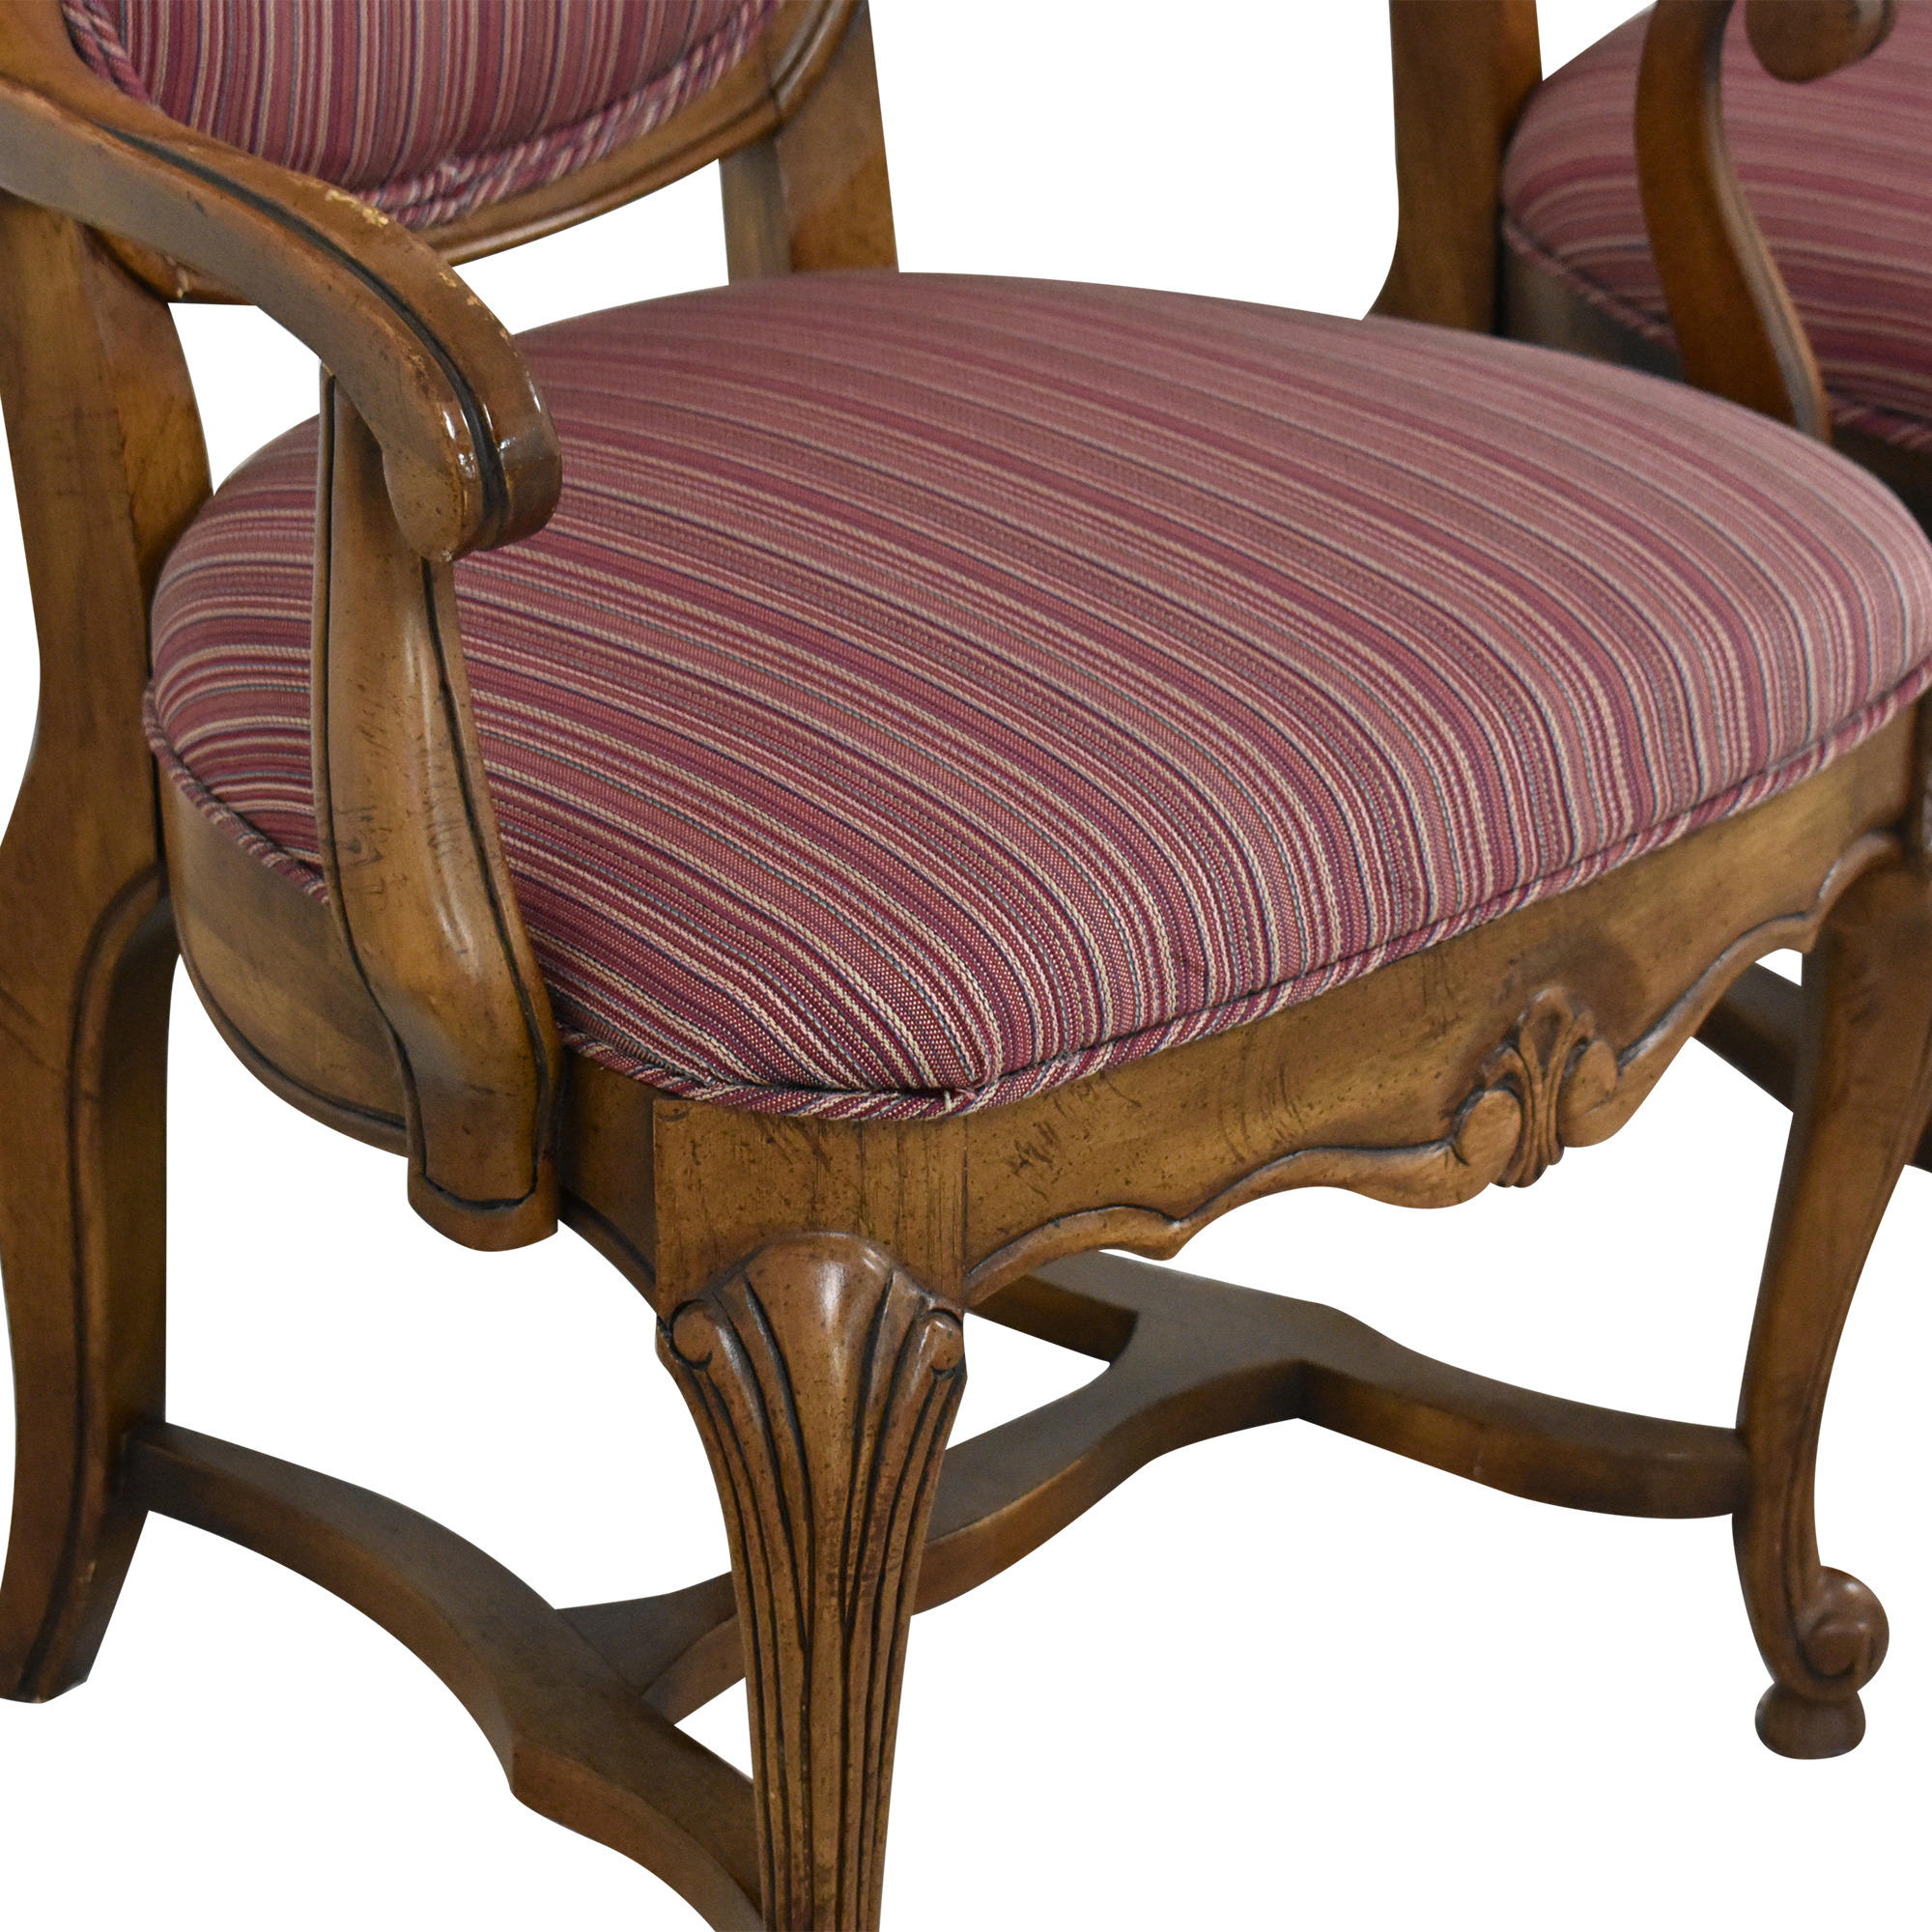 Ethan Allen Ethan Allen High Back Dining Chairs coupon